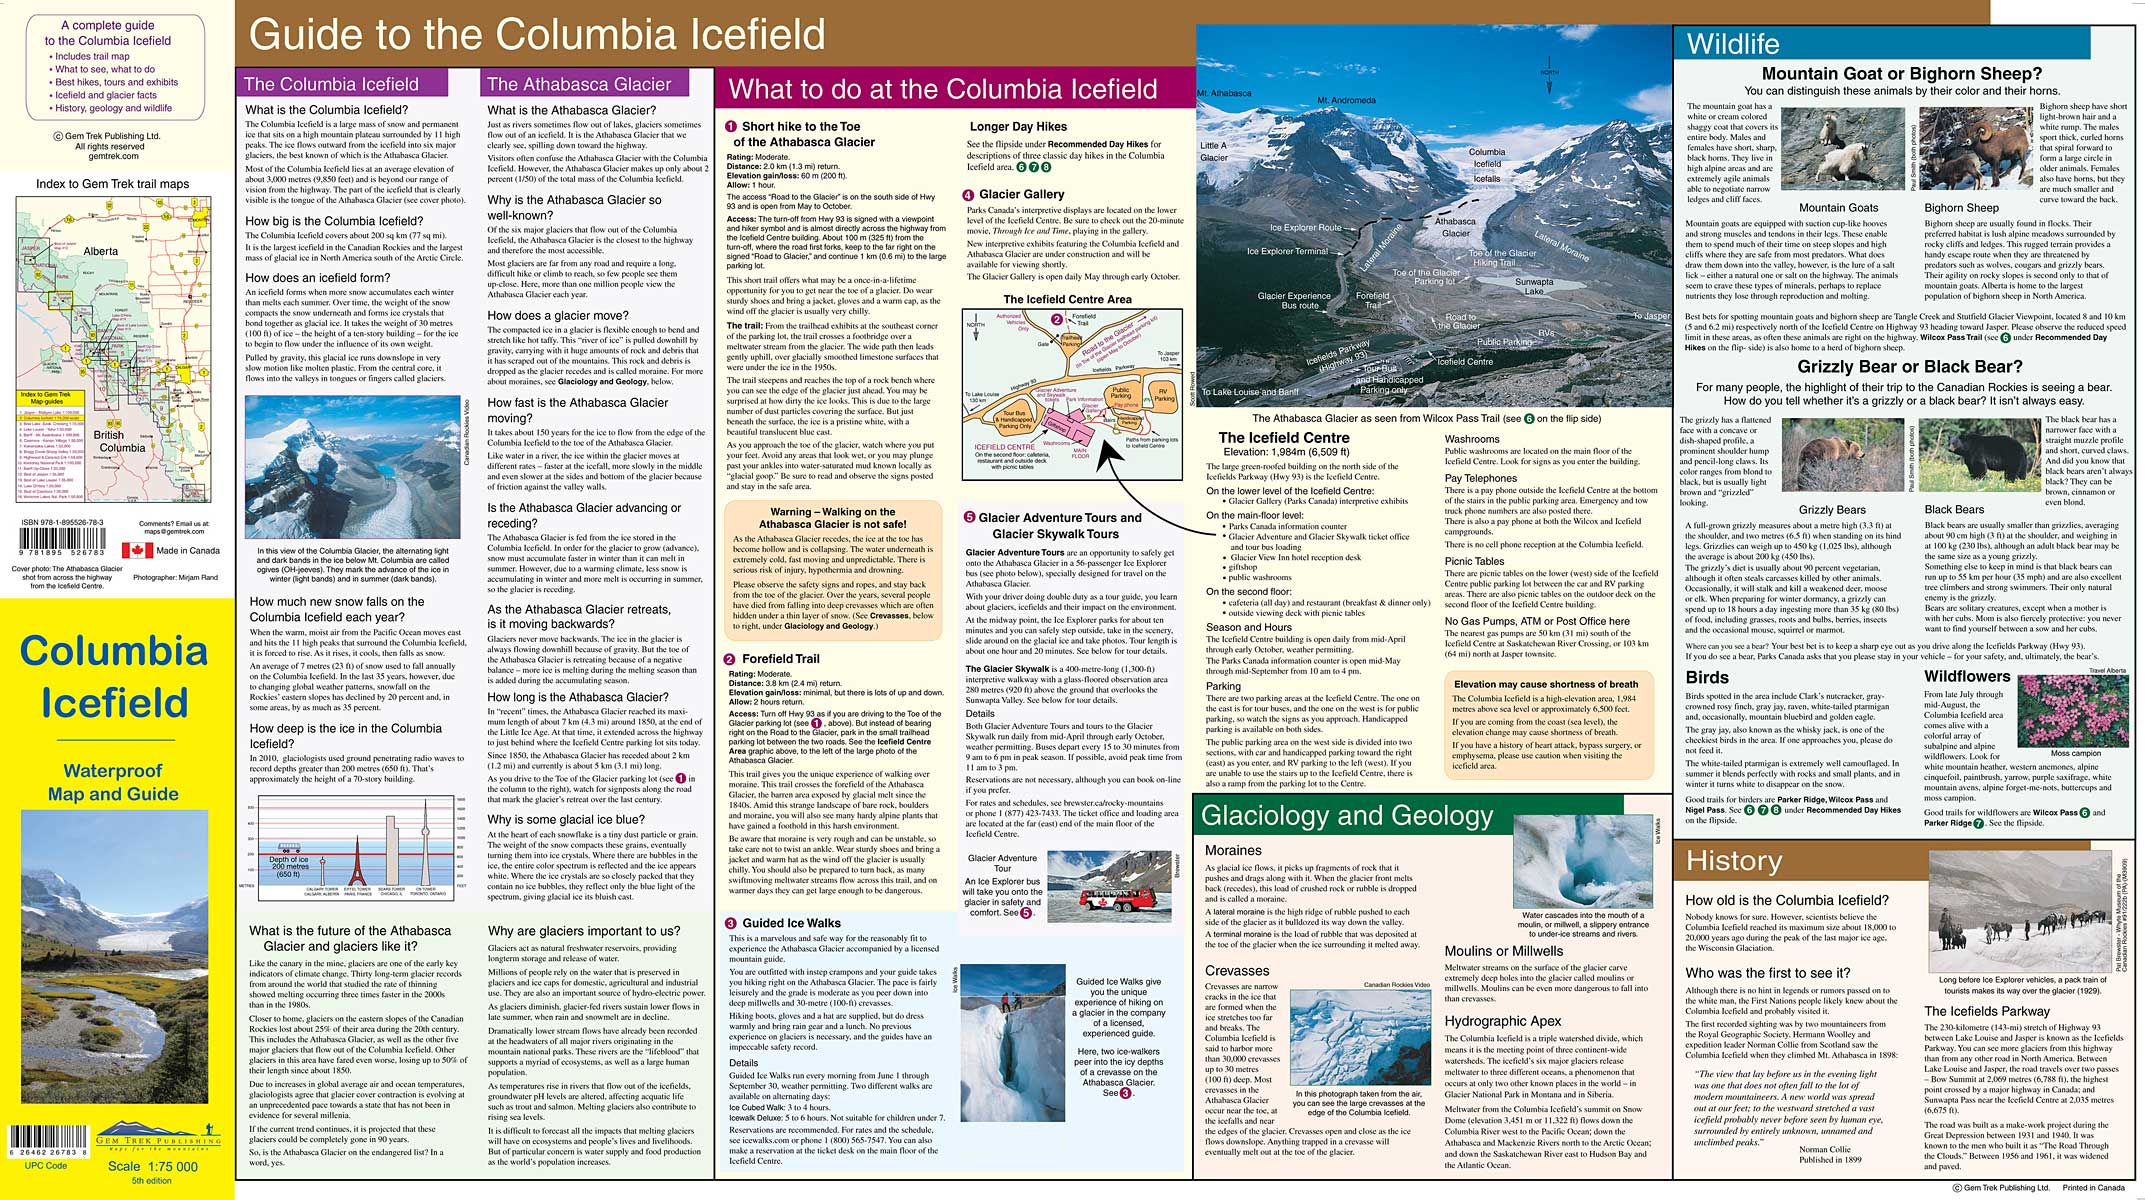 Columbia Icefield Map | Jasper National Park on athabasca falls map, jasper map, moraine lake map, banff national park map, lake louise ski resort map, canmore map, cowboy trail map, lethbridge map, marmot basin map, tioga road map, great divide mountain bike route map, milford road map, kananaskis country map, yellowhead highway map, sunwapta falls map, blue ridge parkway motorcycle map, taconic state parkway map, nova scotia map, bow valley parkway map, columbia icefields map,